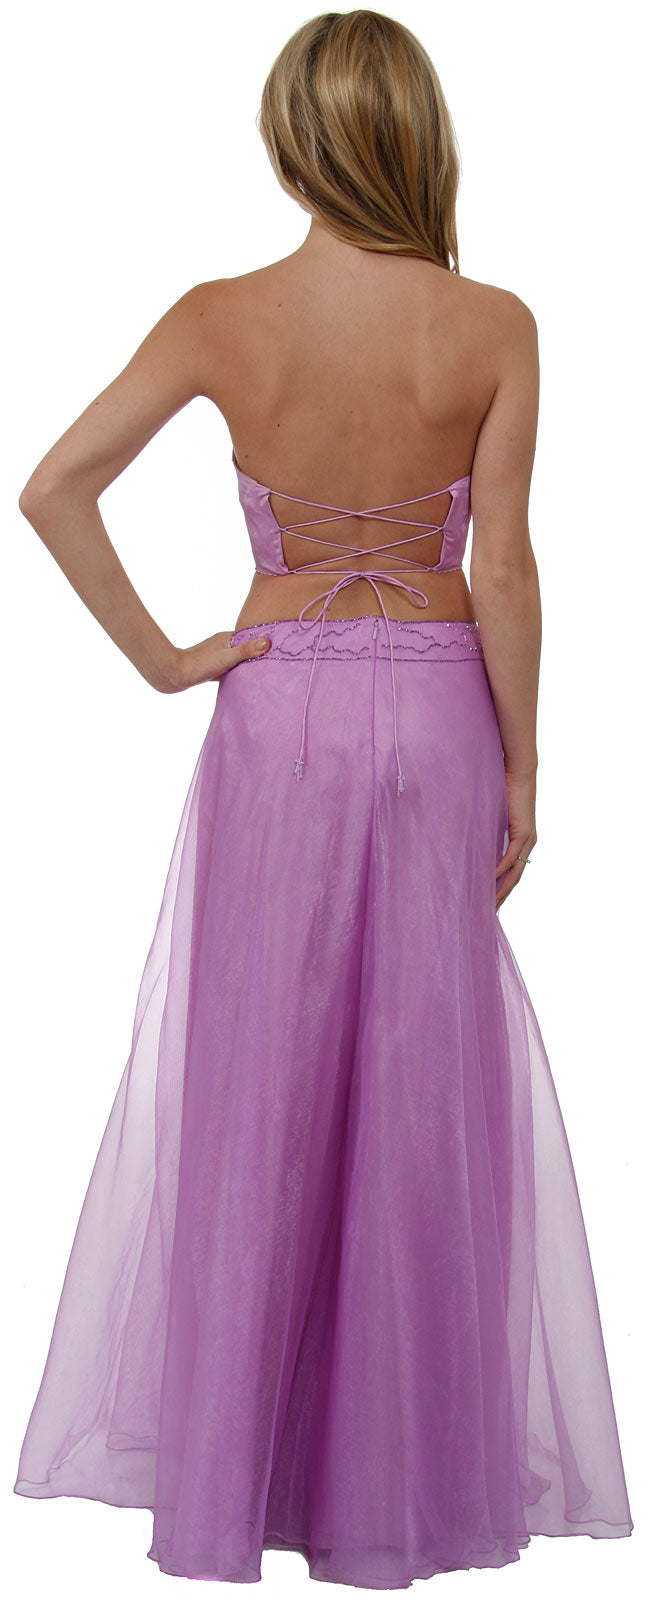 Back image of Criss Crossed Strapless Beaded Dress